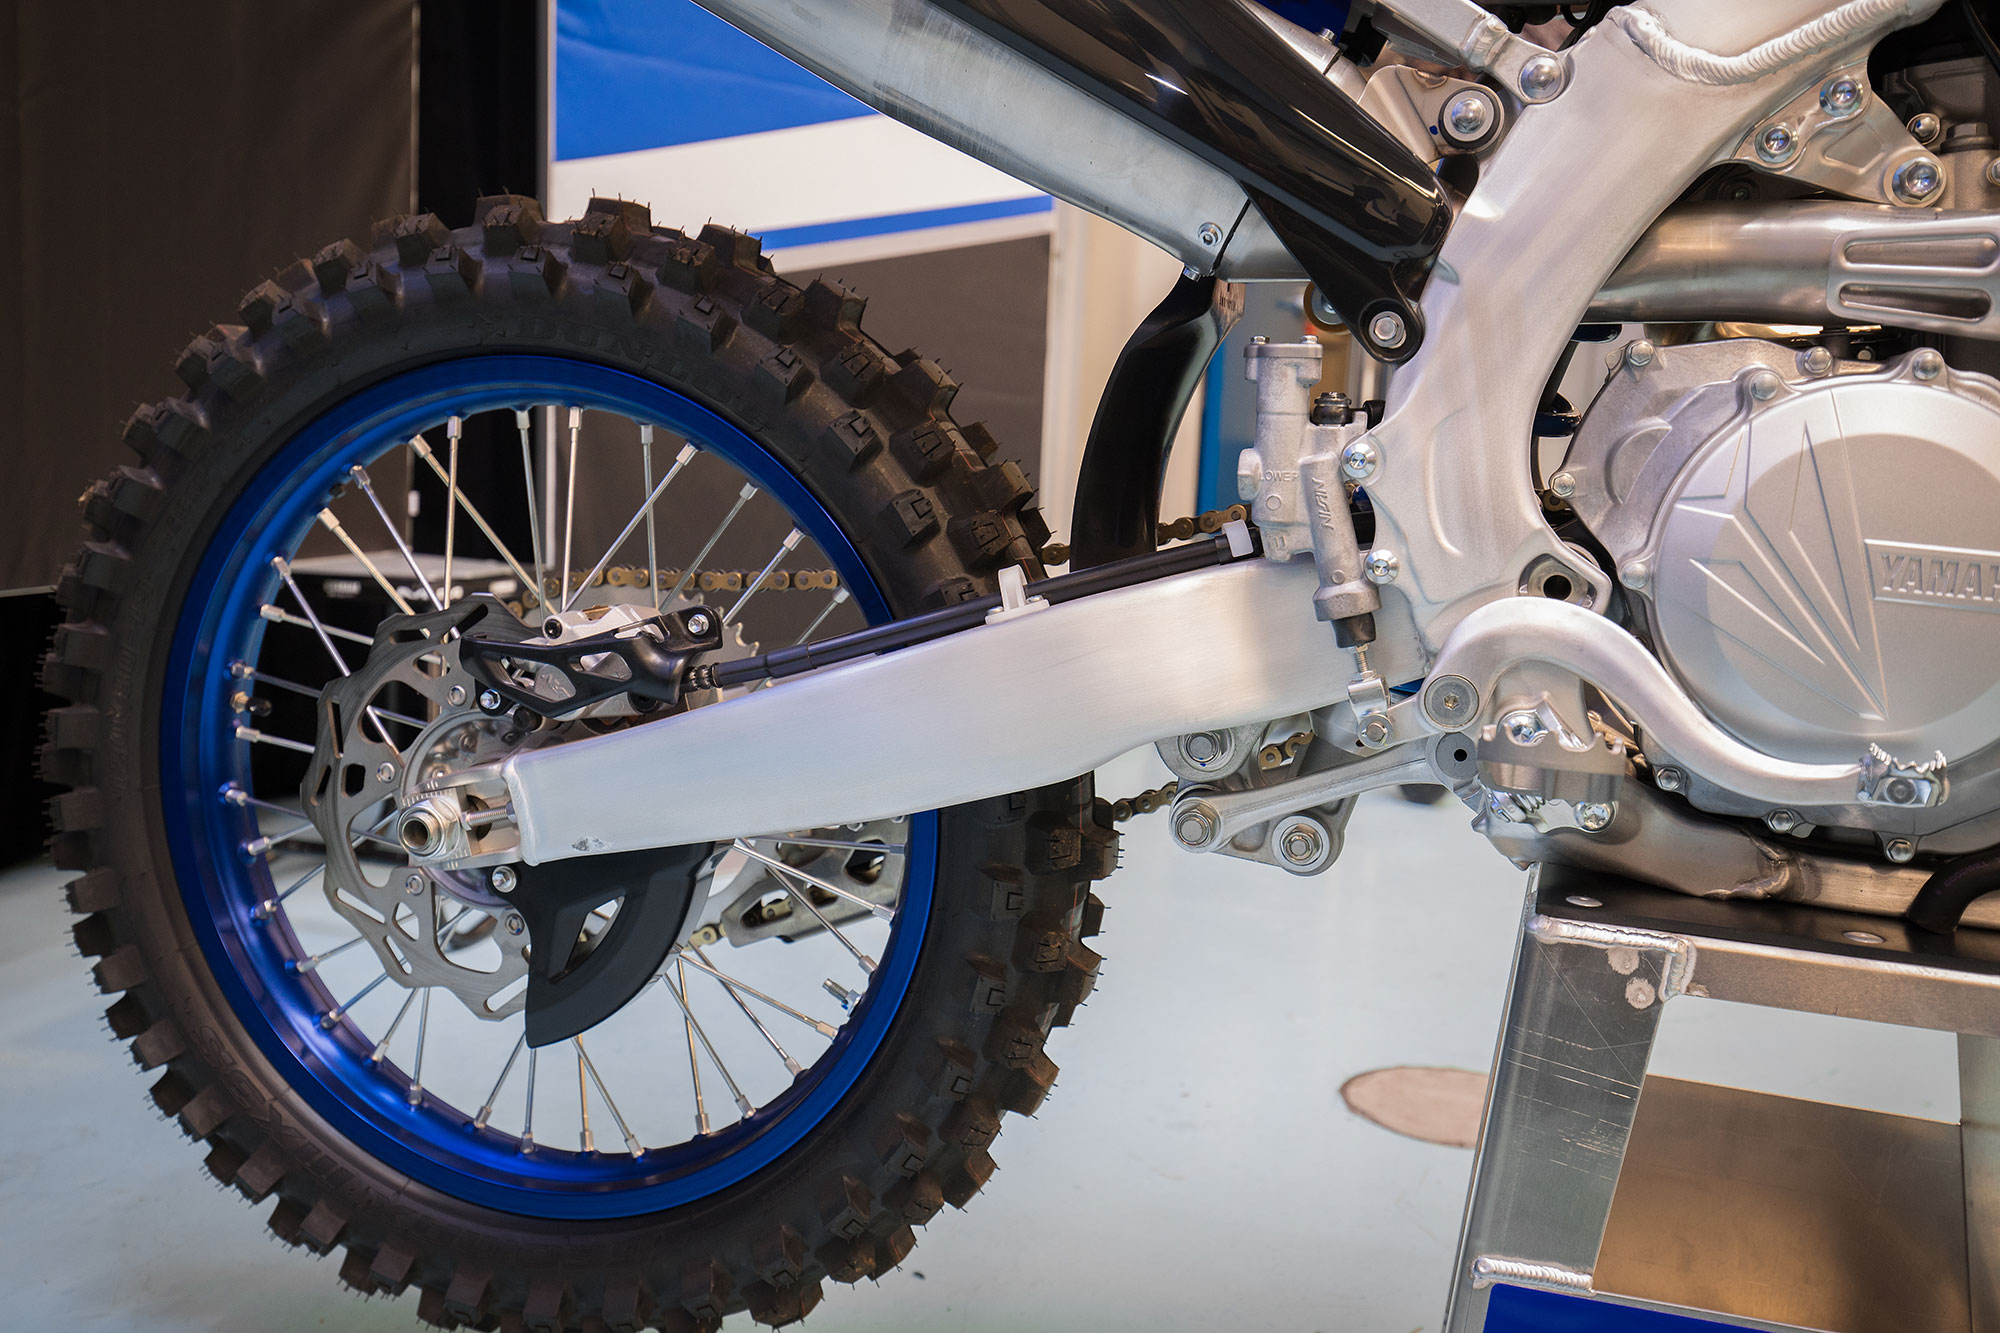 Blue wheels that are lighter come standard on the 2018 YZ450F.